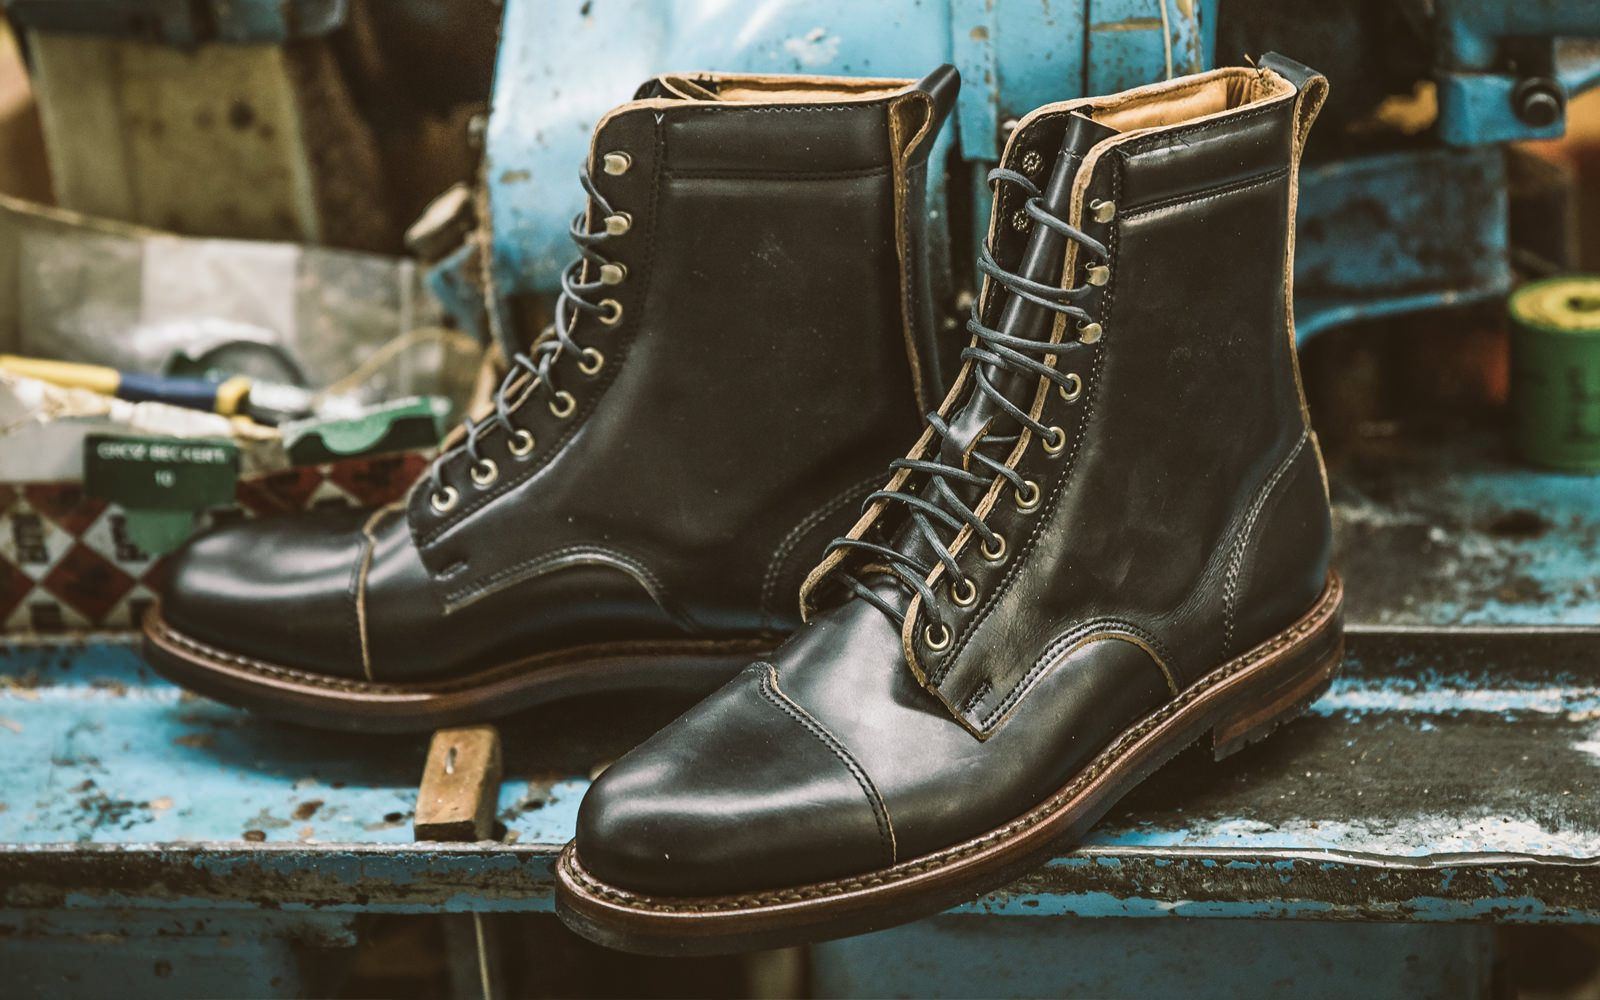 Iron And Air Rancourt Manufacture 2 1600x1000 - The Iron & Air x Rancourt & Co. Traveller Boot